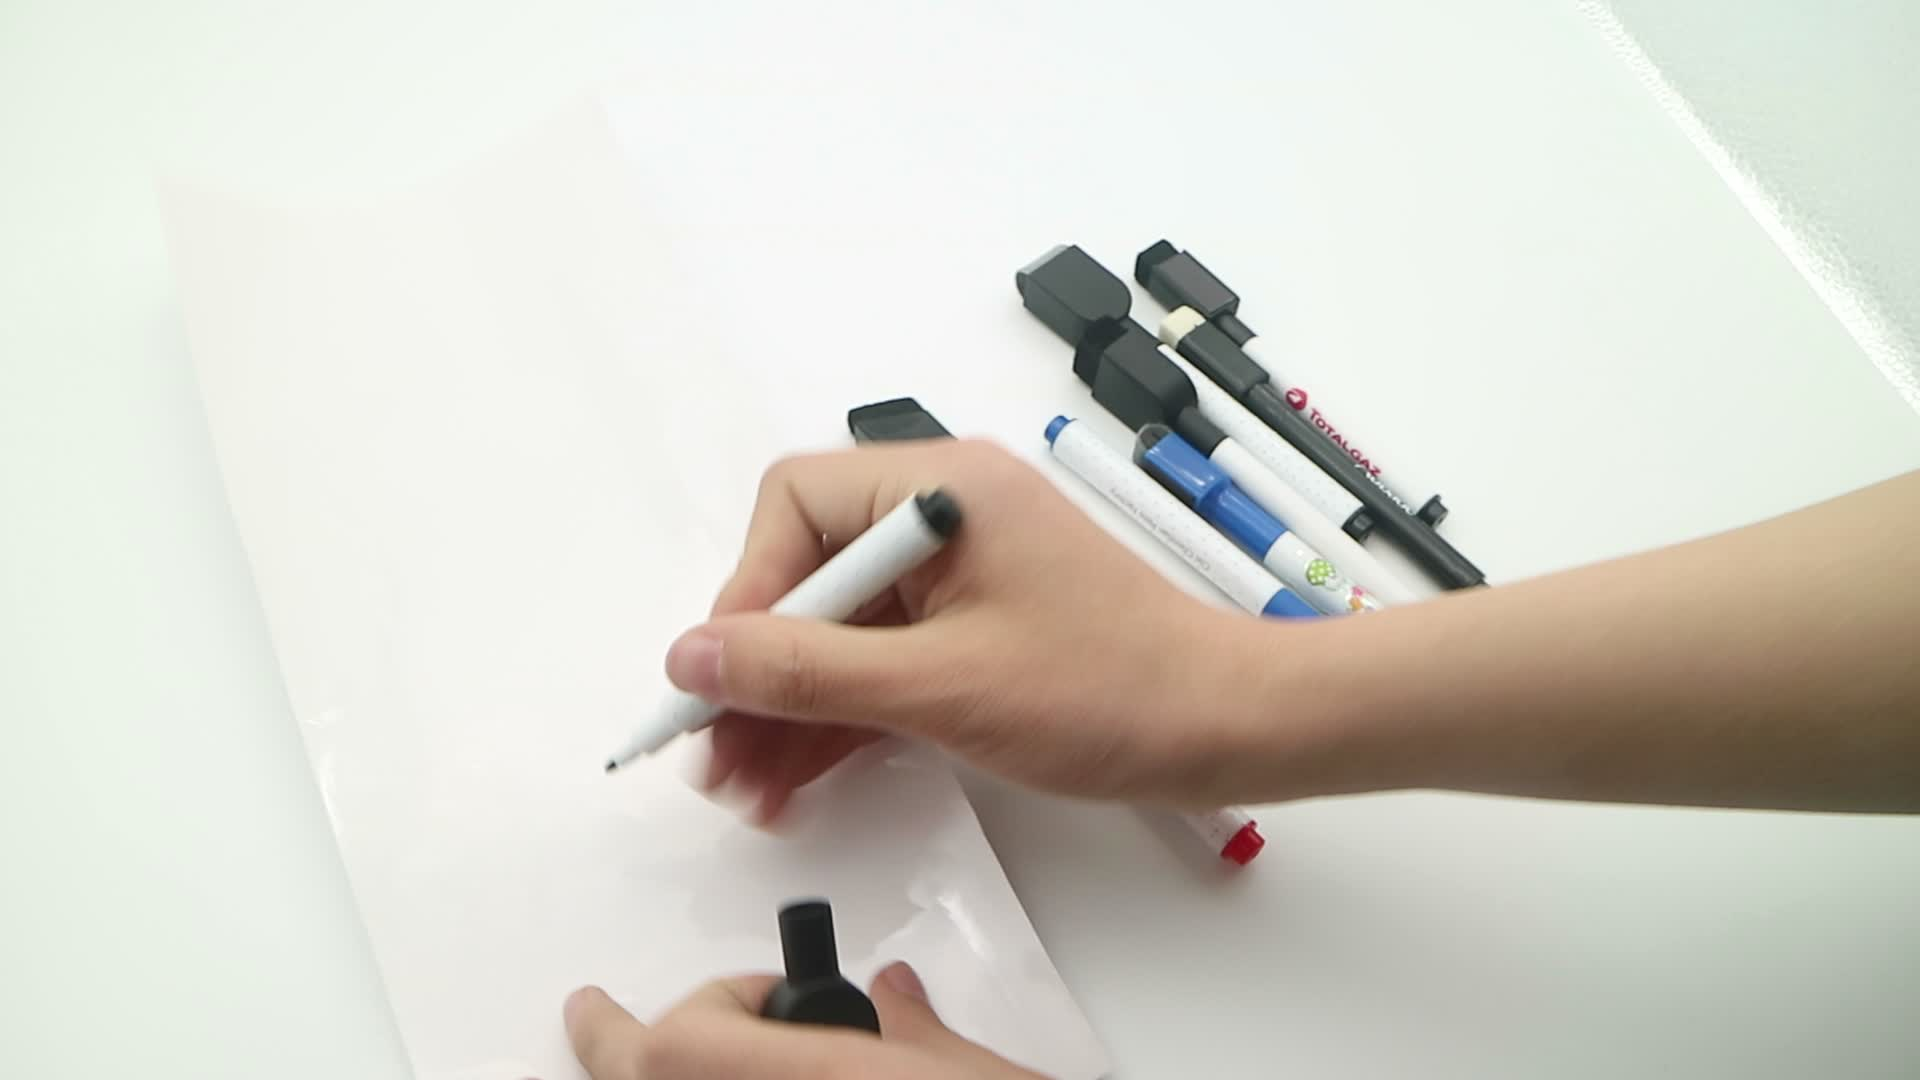 Classic Colors Low Odor Magnetic Dry Erase Markers With Erasers, Assorted Colors Whiteboard ink pen